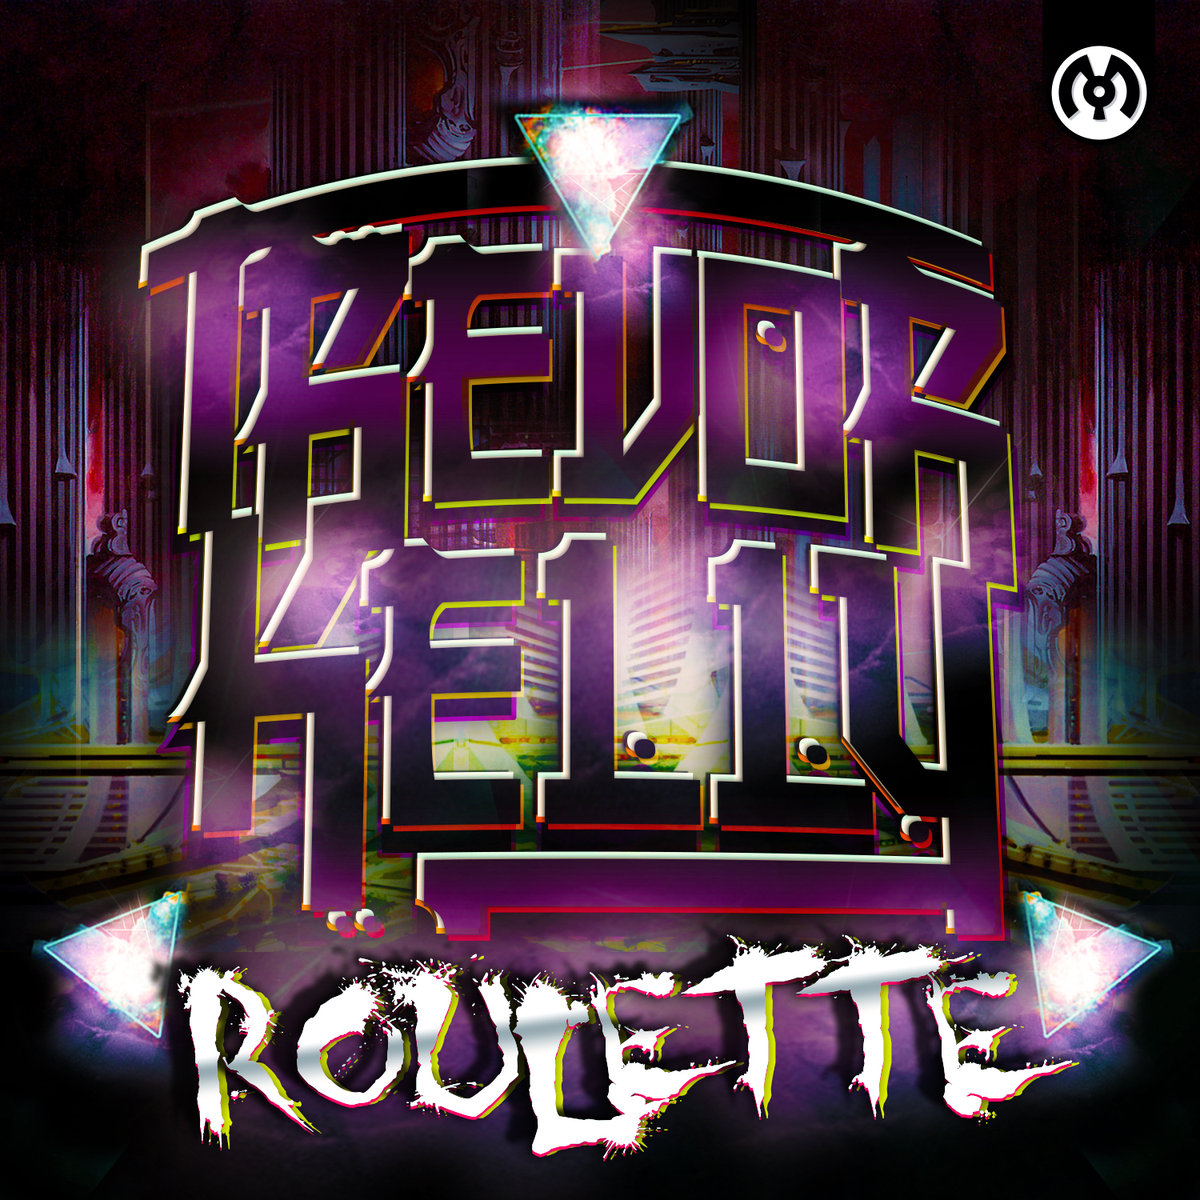 Trevor Kelly & Taso - Chinese Finger Trap @ 'Roulette' album (electronic, dubstep)